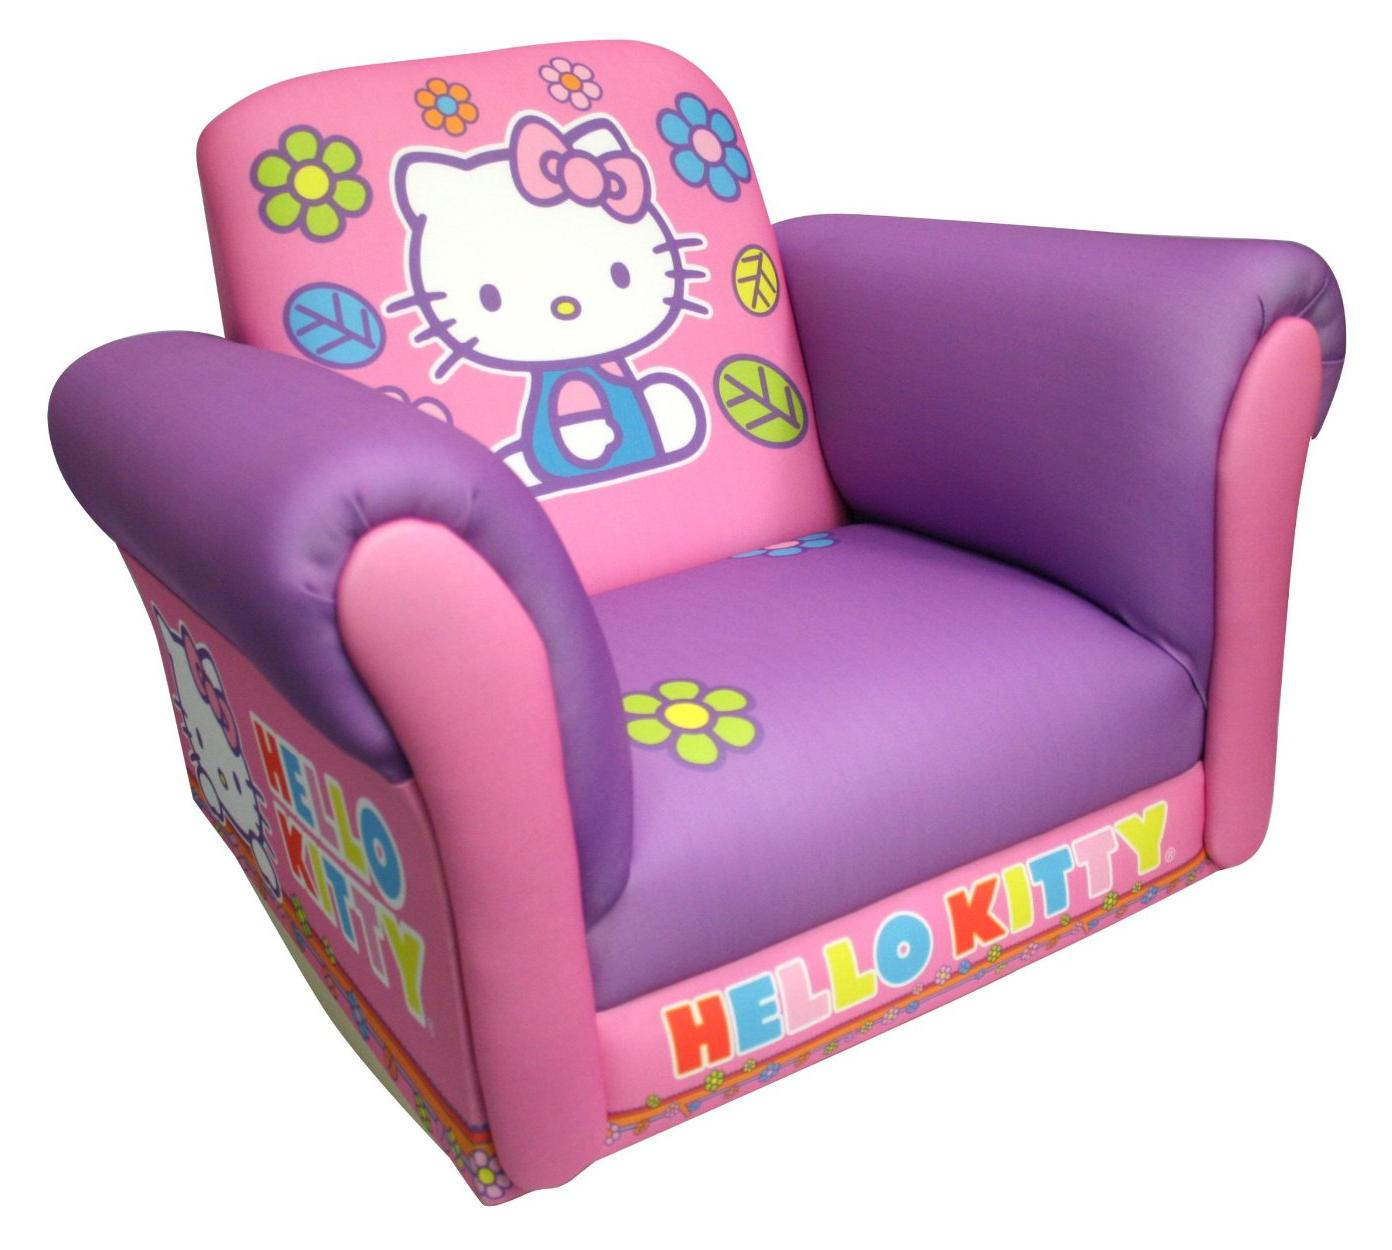 Hello Kitty Desk Chair Lift For Stairs Office Decorating Interior Of Your House U2665hello Lover U2665 Furniture